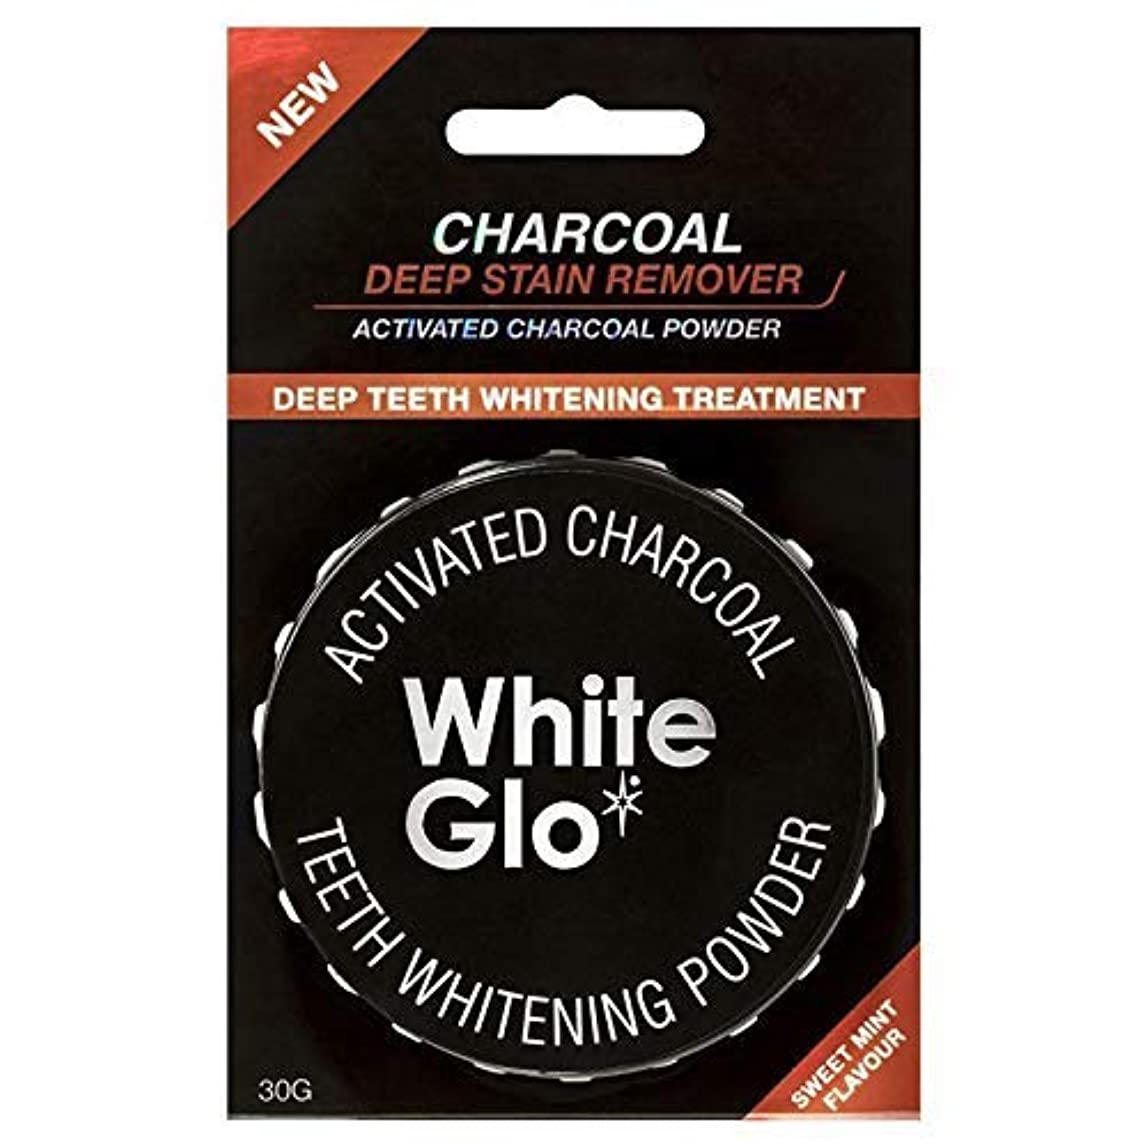 習慣ガチョウリットルTeeth Whitening Systems White Glo Activated Charcoal Teeth Whitening Powder 30g Australia / システムを白くする歯を白くする歯の粉...